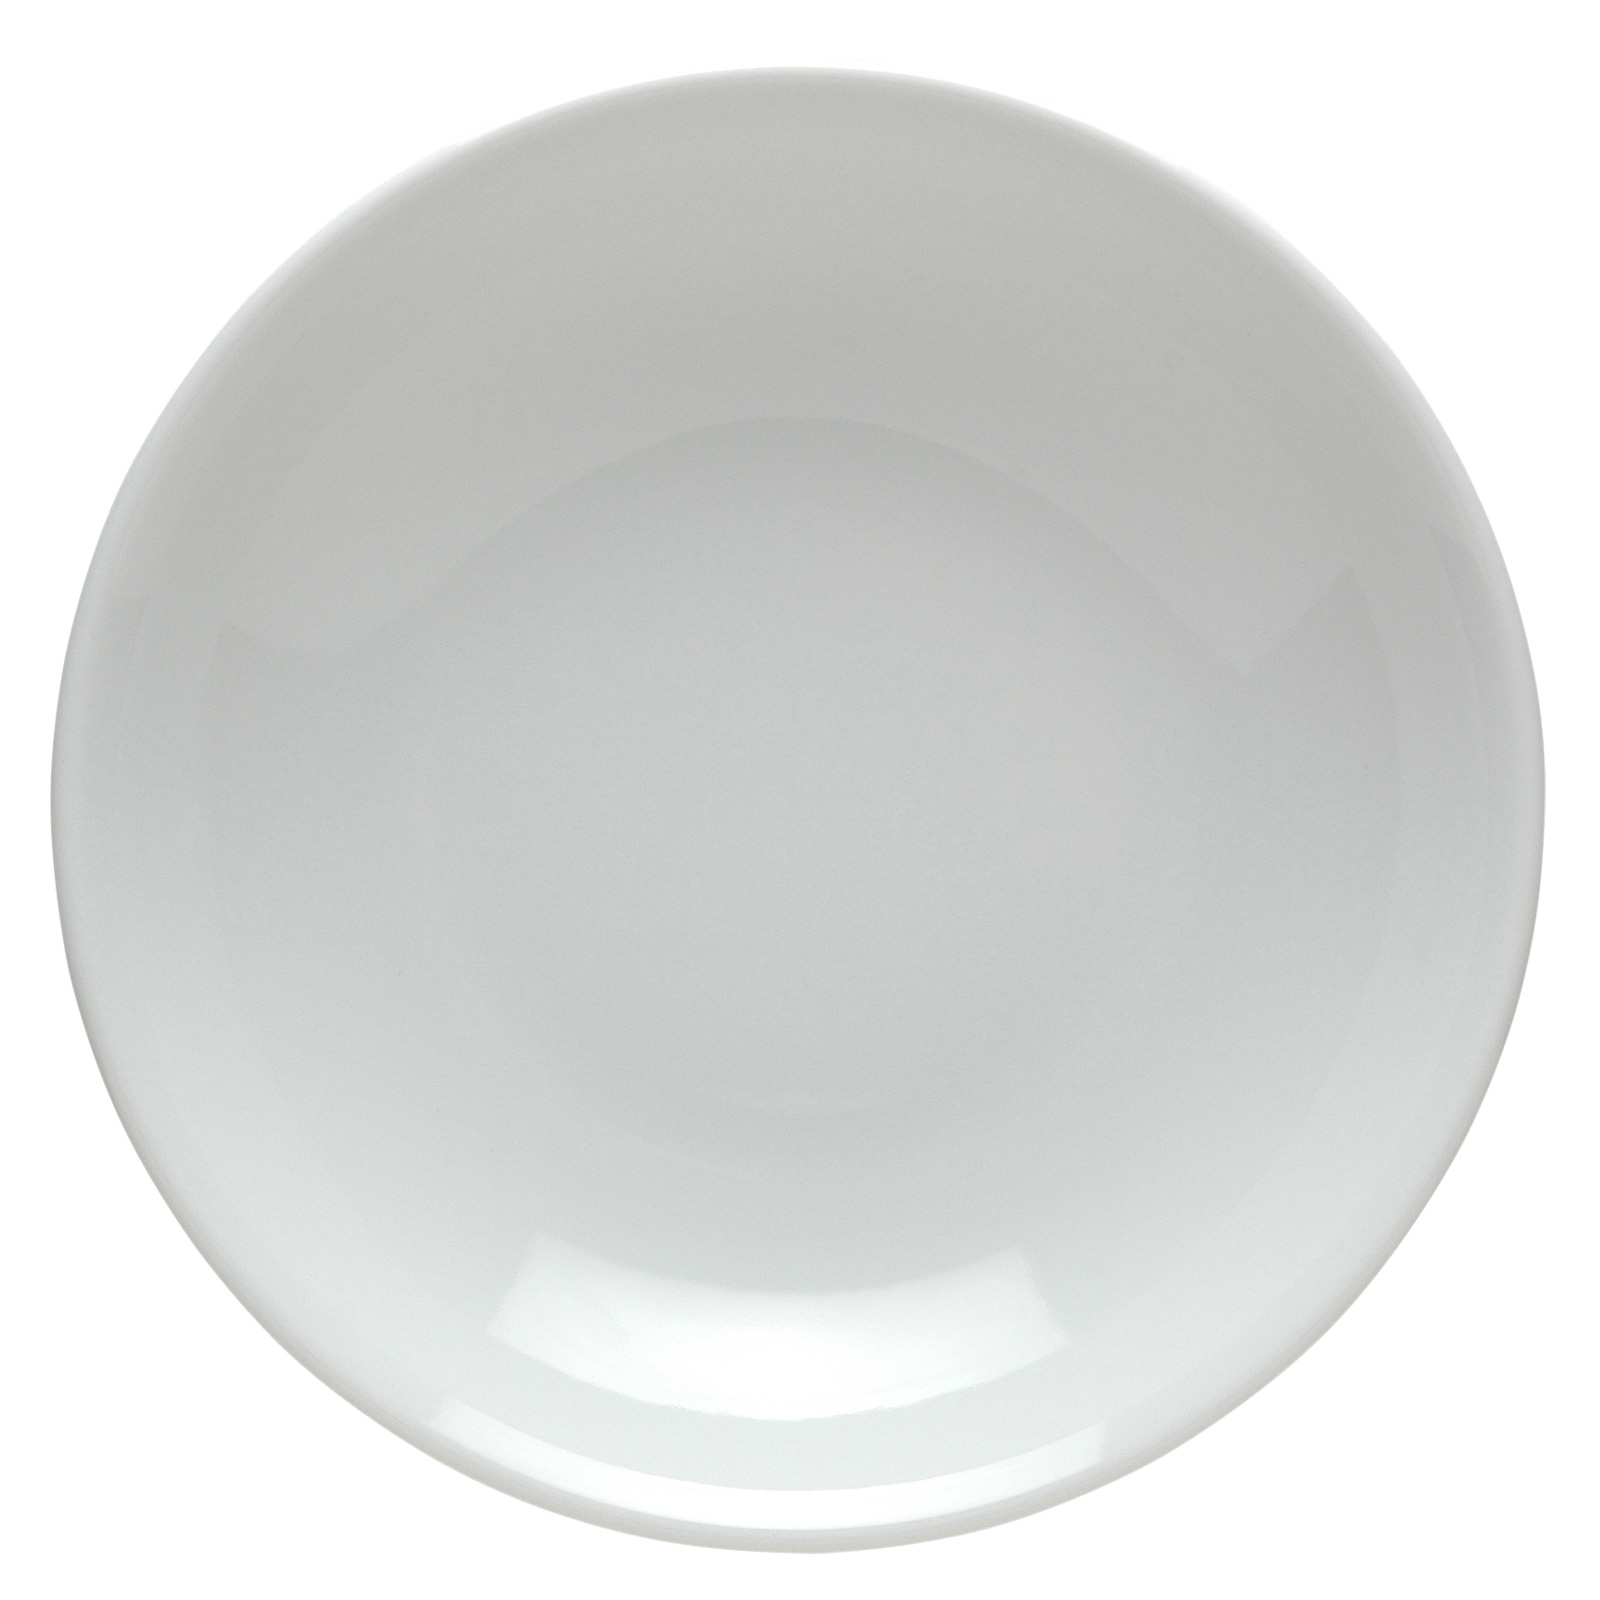 Hotel Flat Plate Extra Large